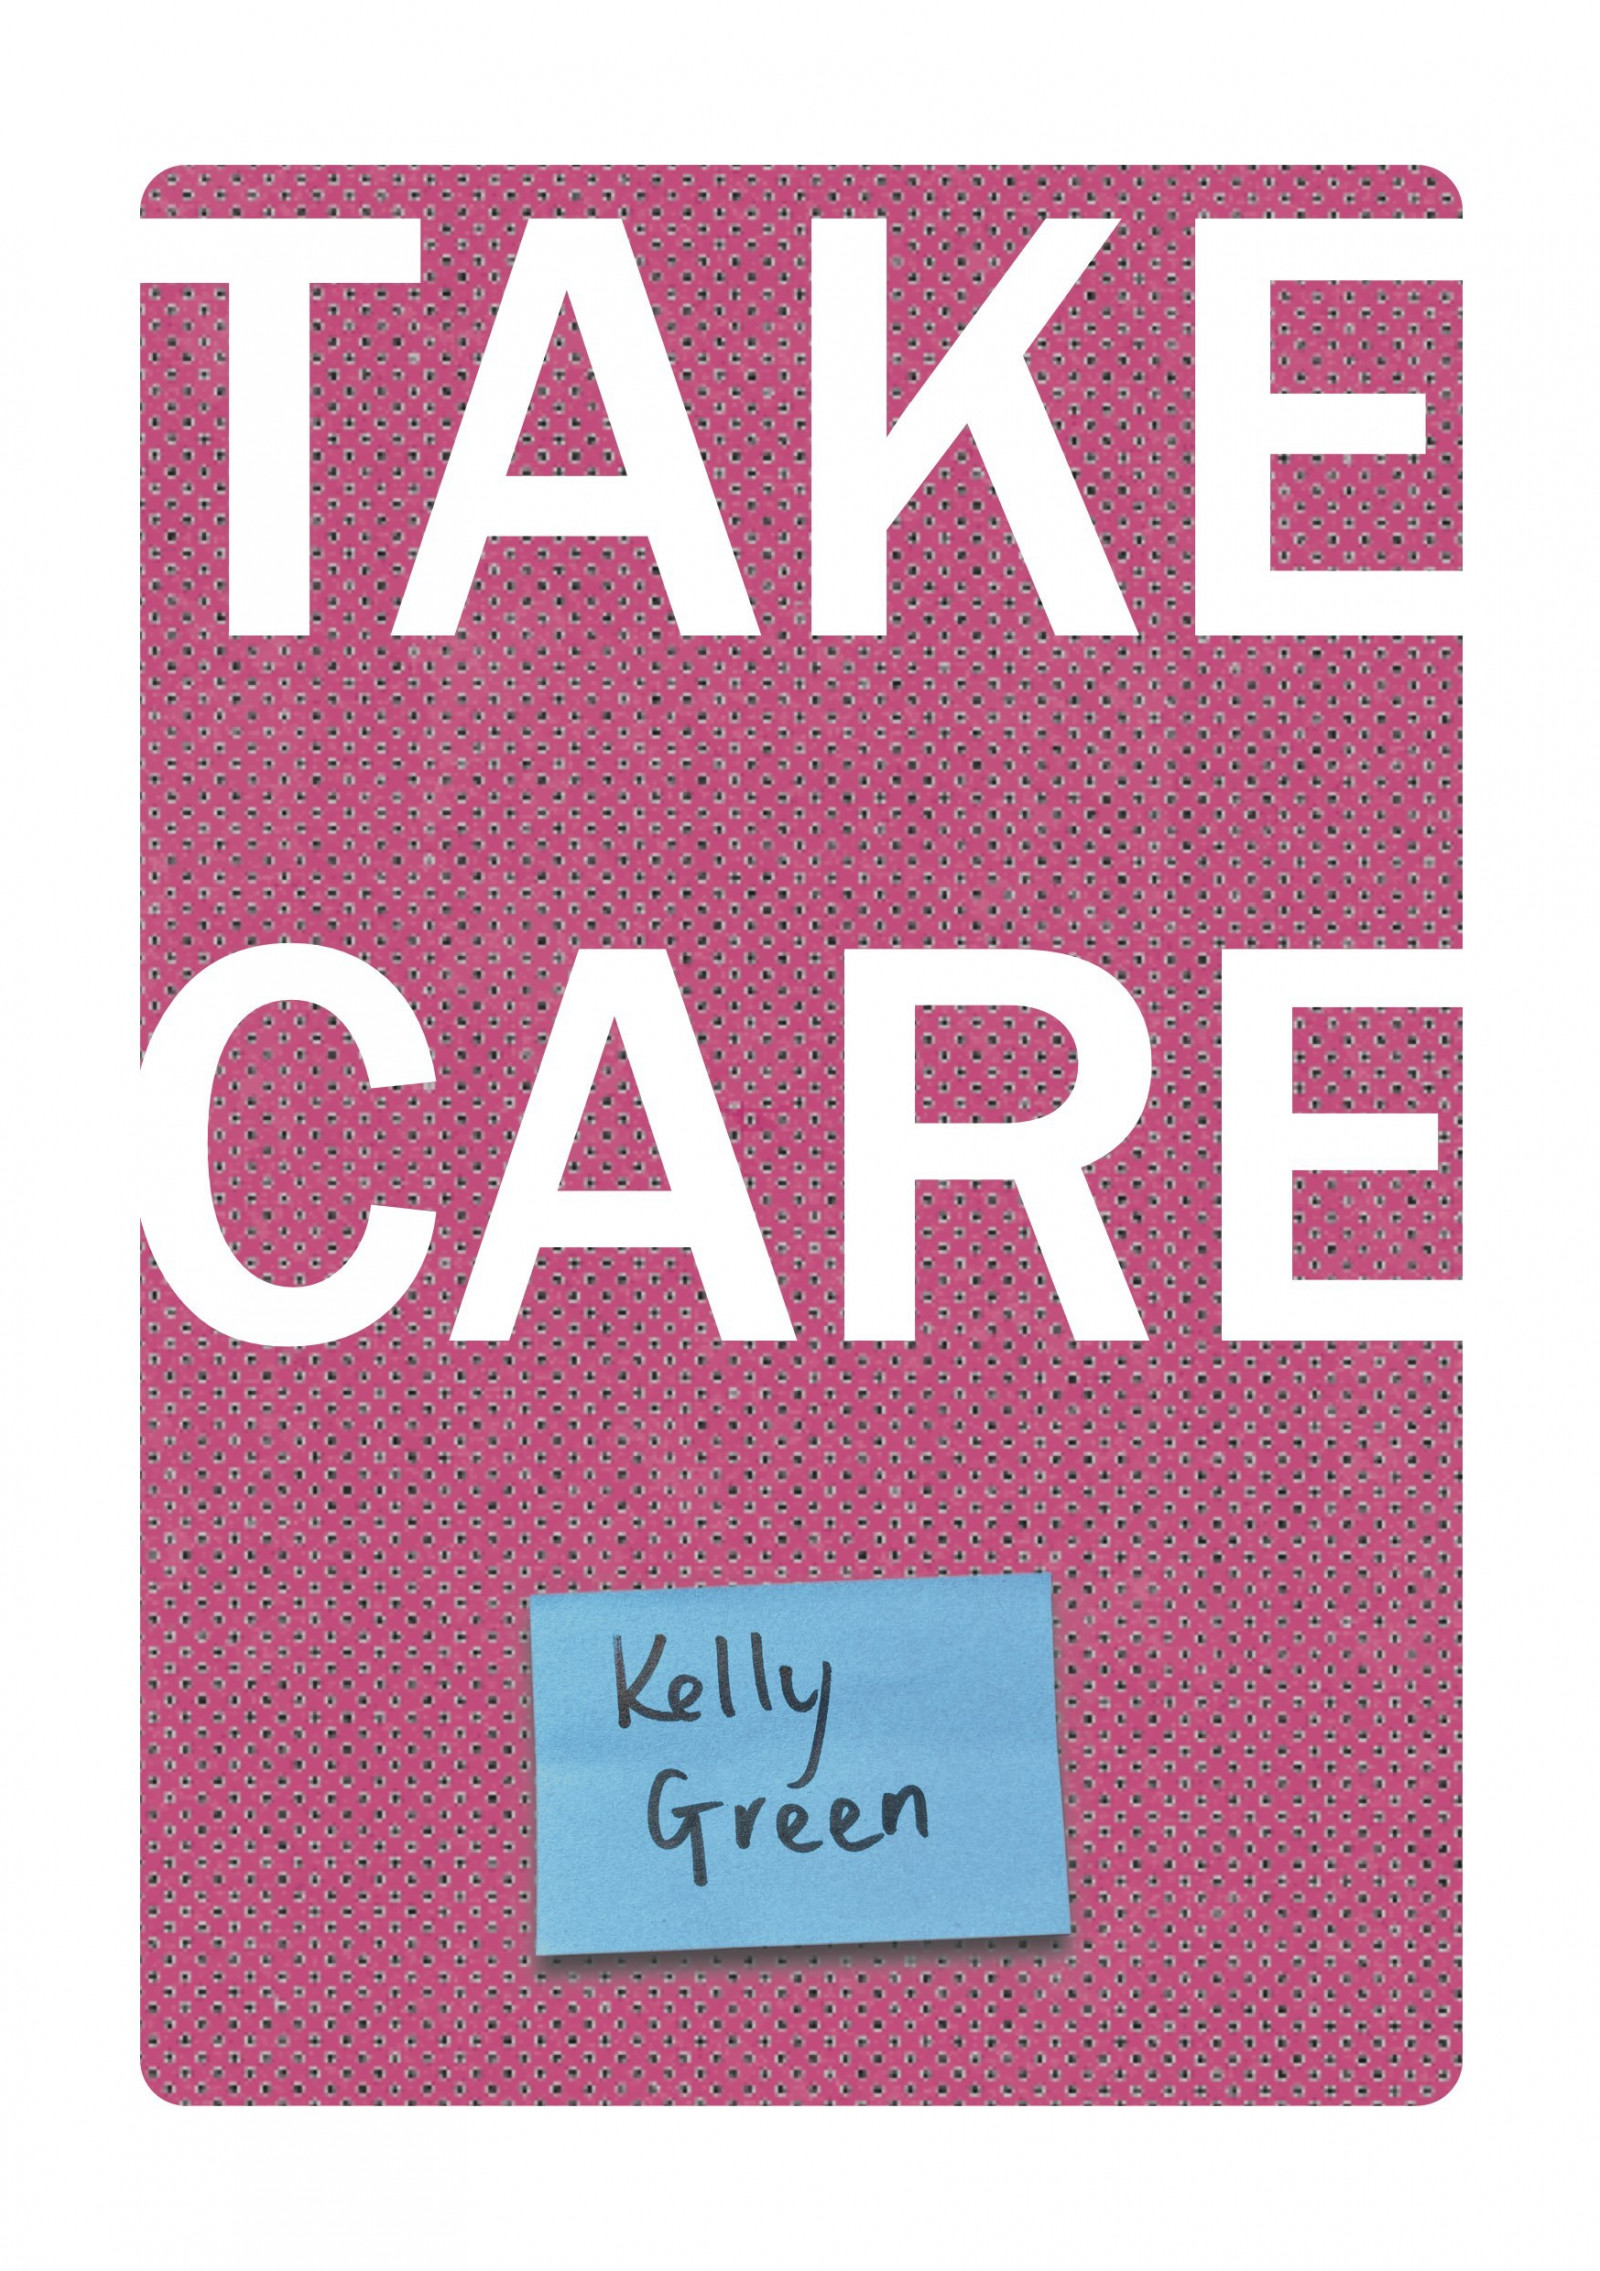 Front page of Take Care zine. A pink background with the words 'Take Care' in white letters and the name 'Kelly Green' on a blue rectangle.